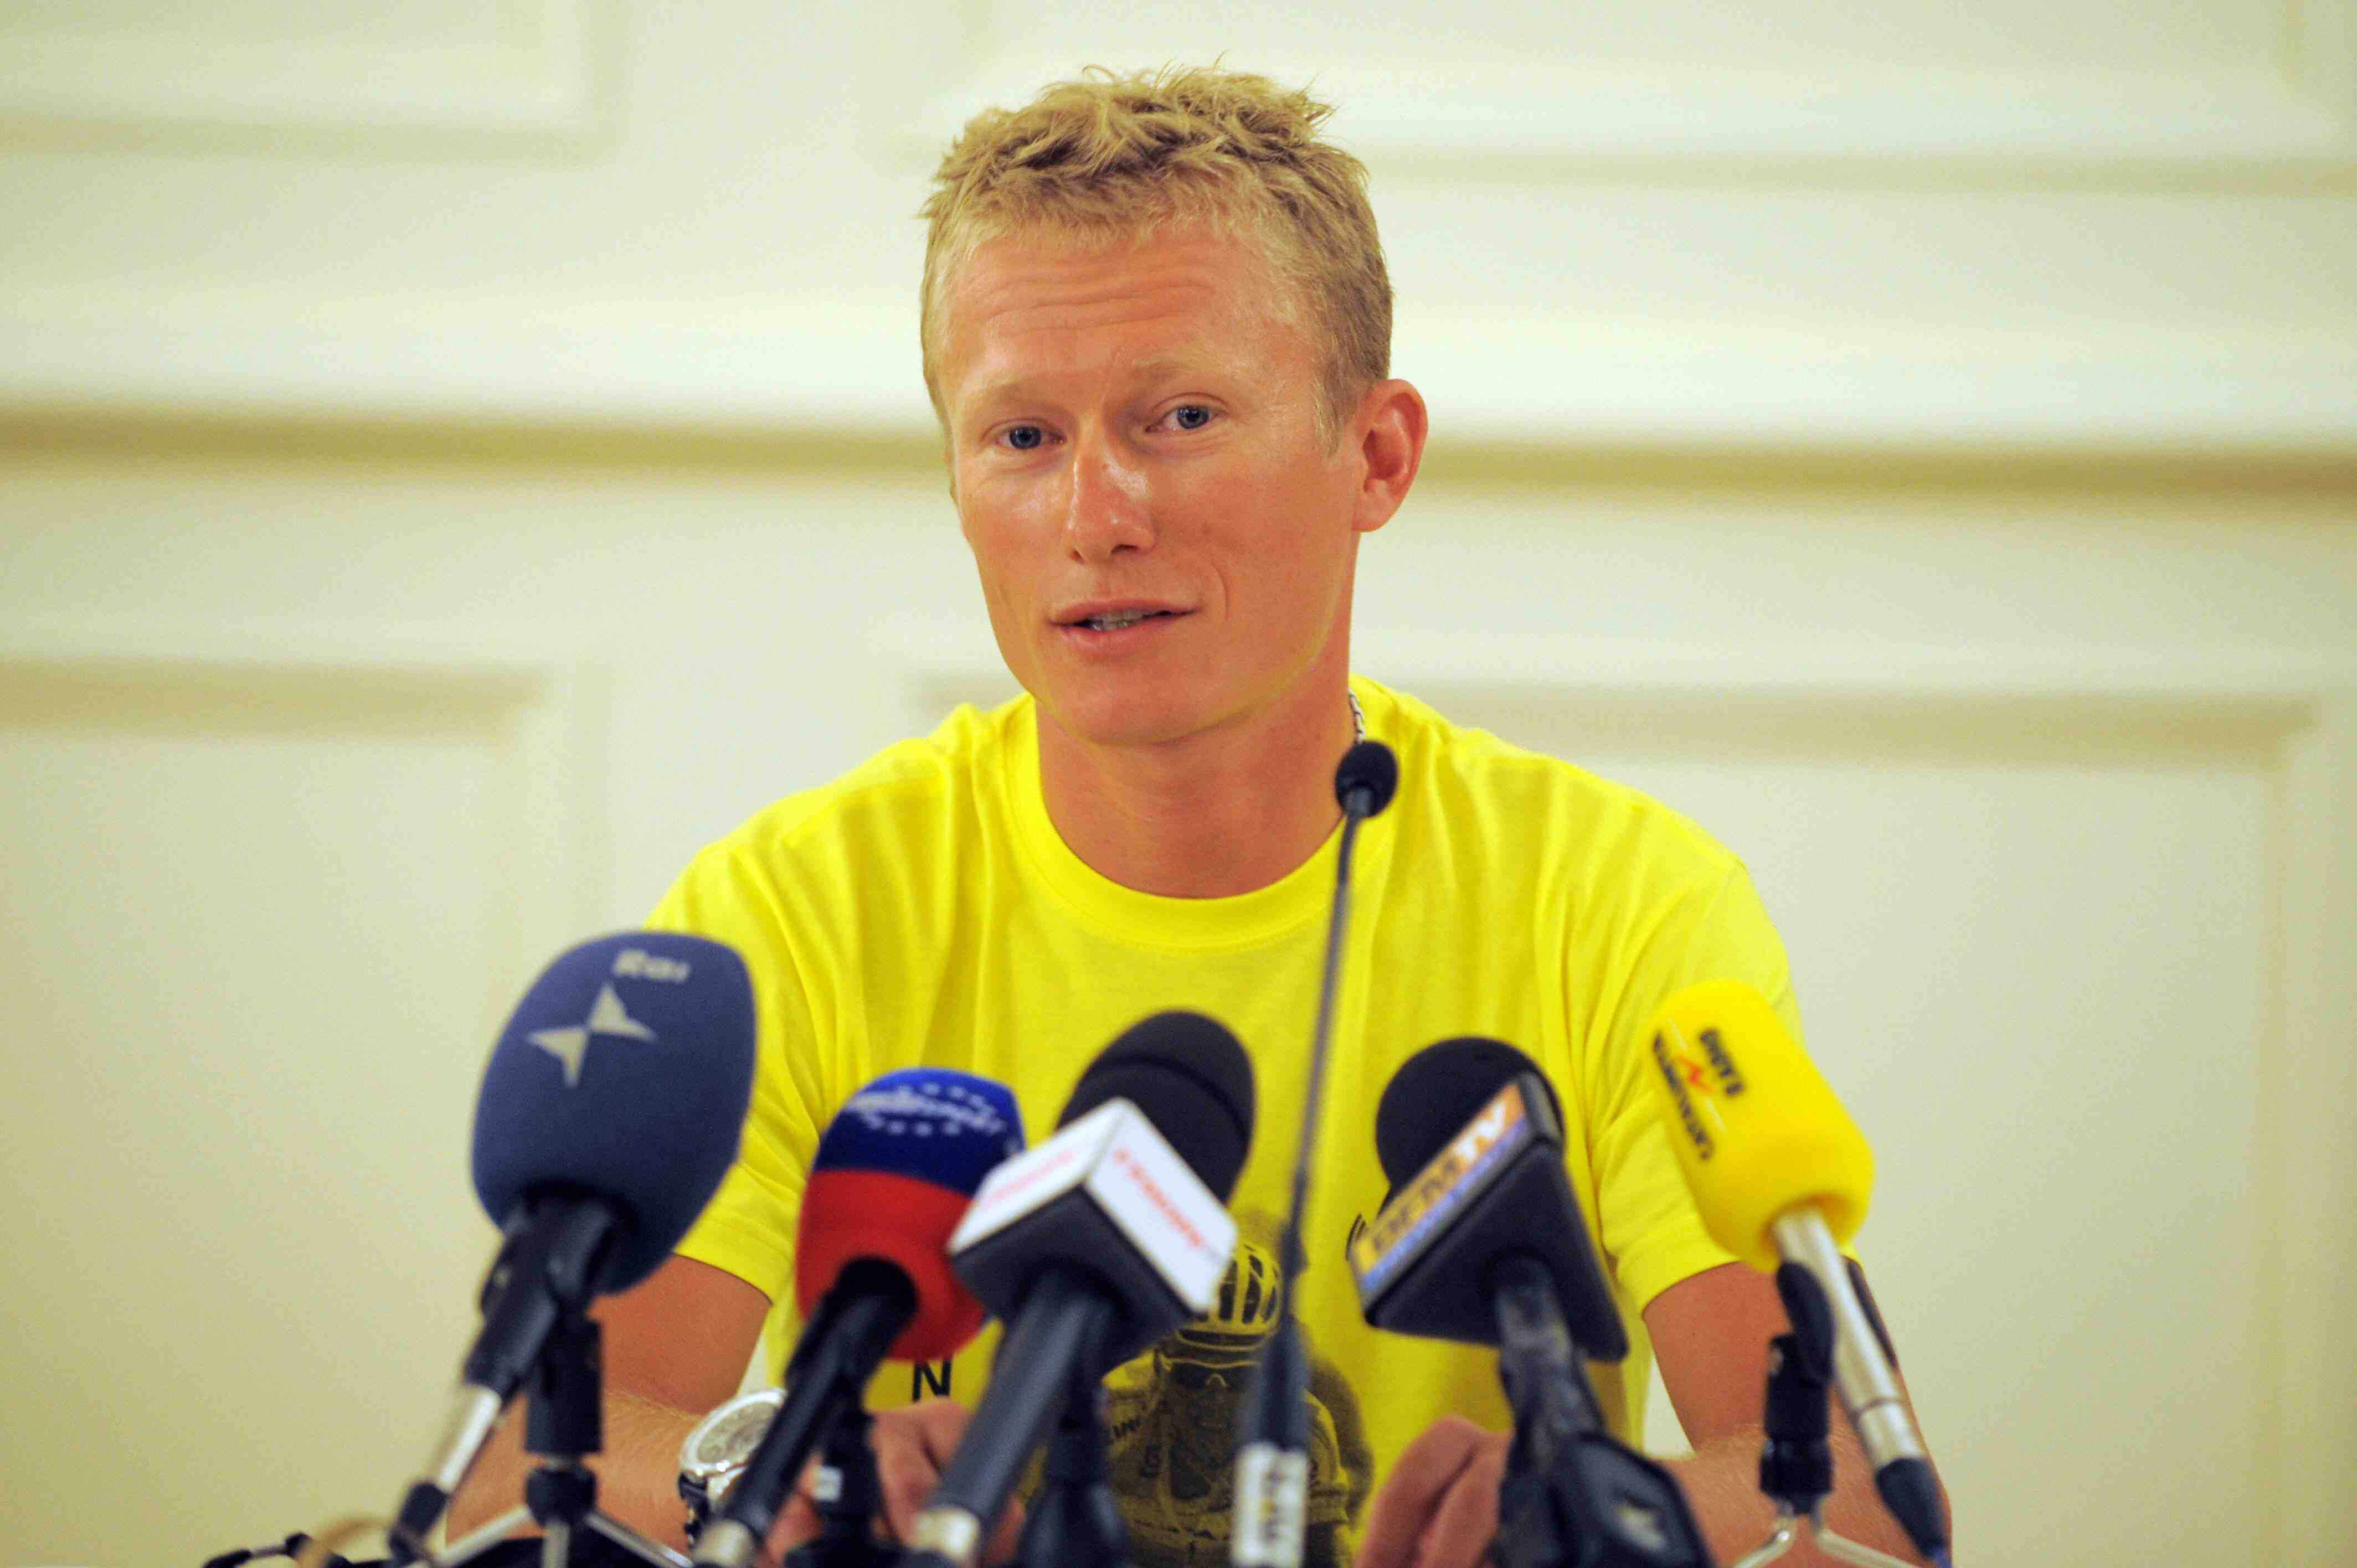 Kazakh rider Alexandre Vinokourov gives a press conference after being banned for doping (until July 24, 2009) on July 2, 2009 in the principalty of Monaco, two days ahead of the start of the 96th edition of the Tour de France.